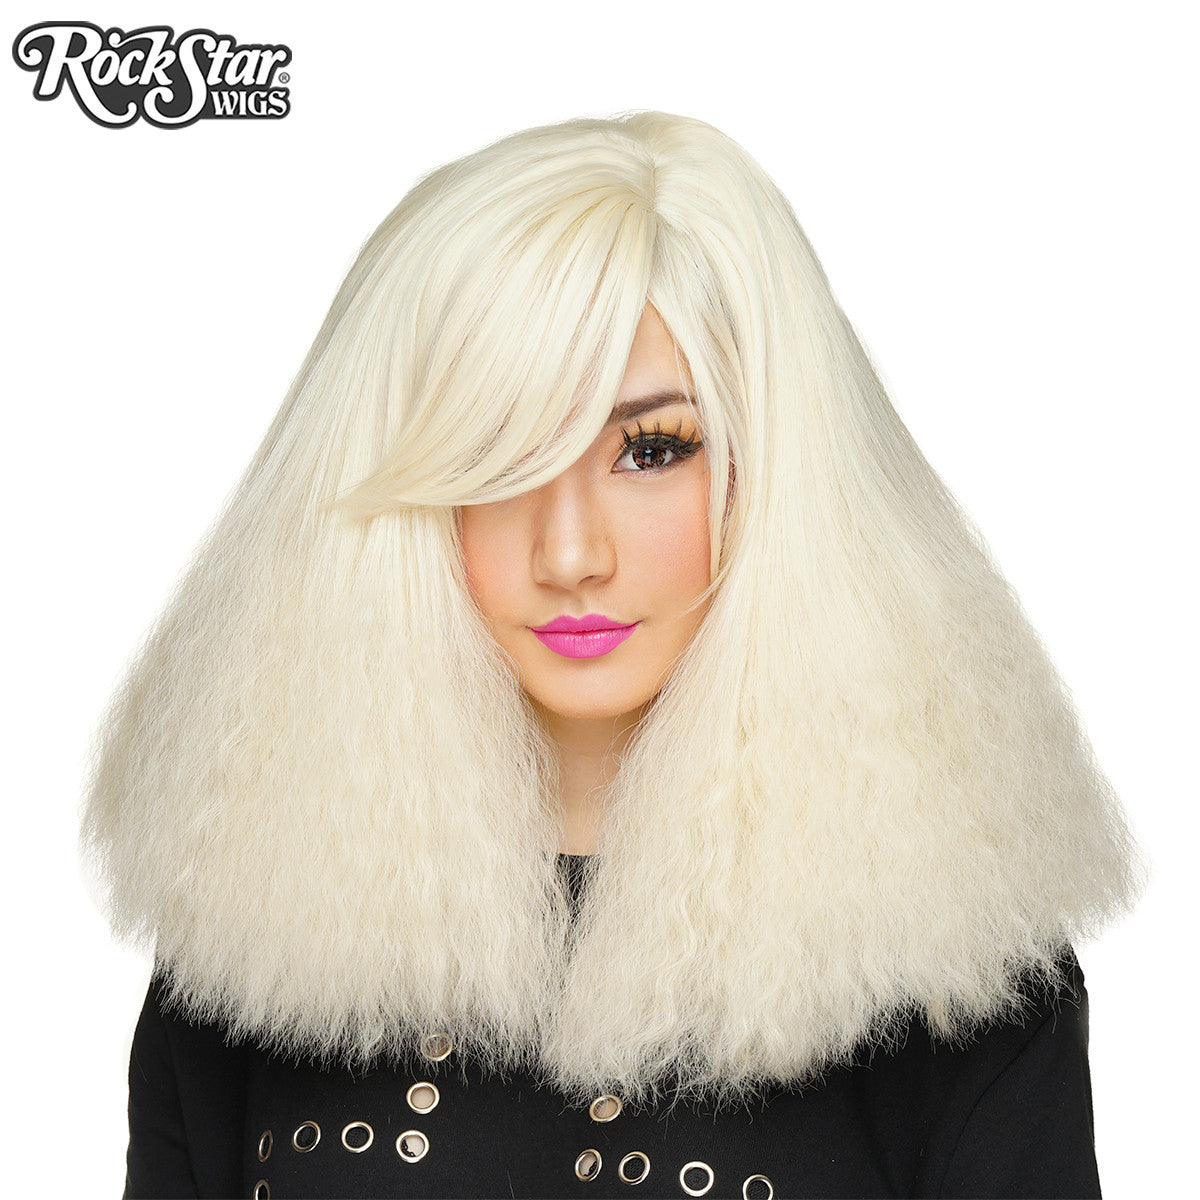 RockStar Wigs® <br> Dynamite™ Collection - Platinum Blonde Blast -00168